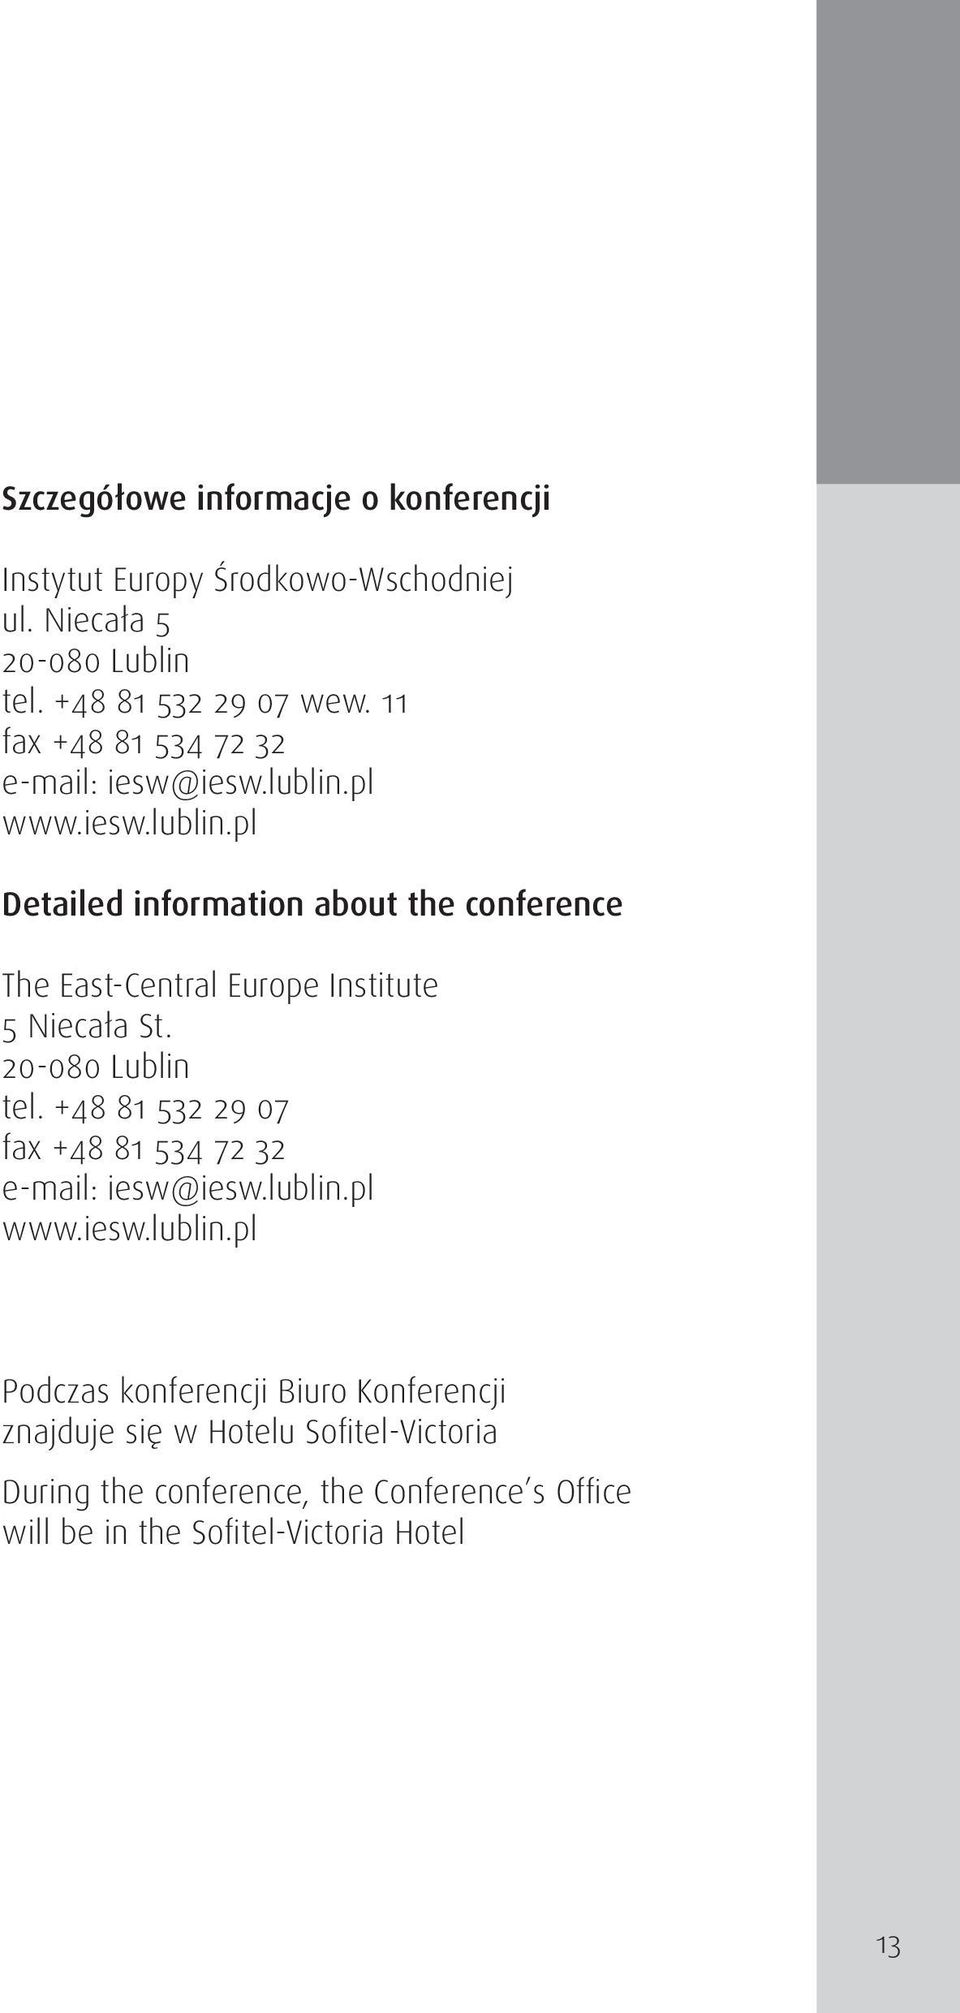 pl www.iesw.lublin.pl Detailed information about the conference The East-Central Europe Institute 5 Niecała St. 20-080 Lublin tel.